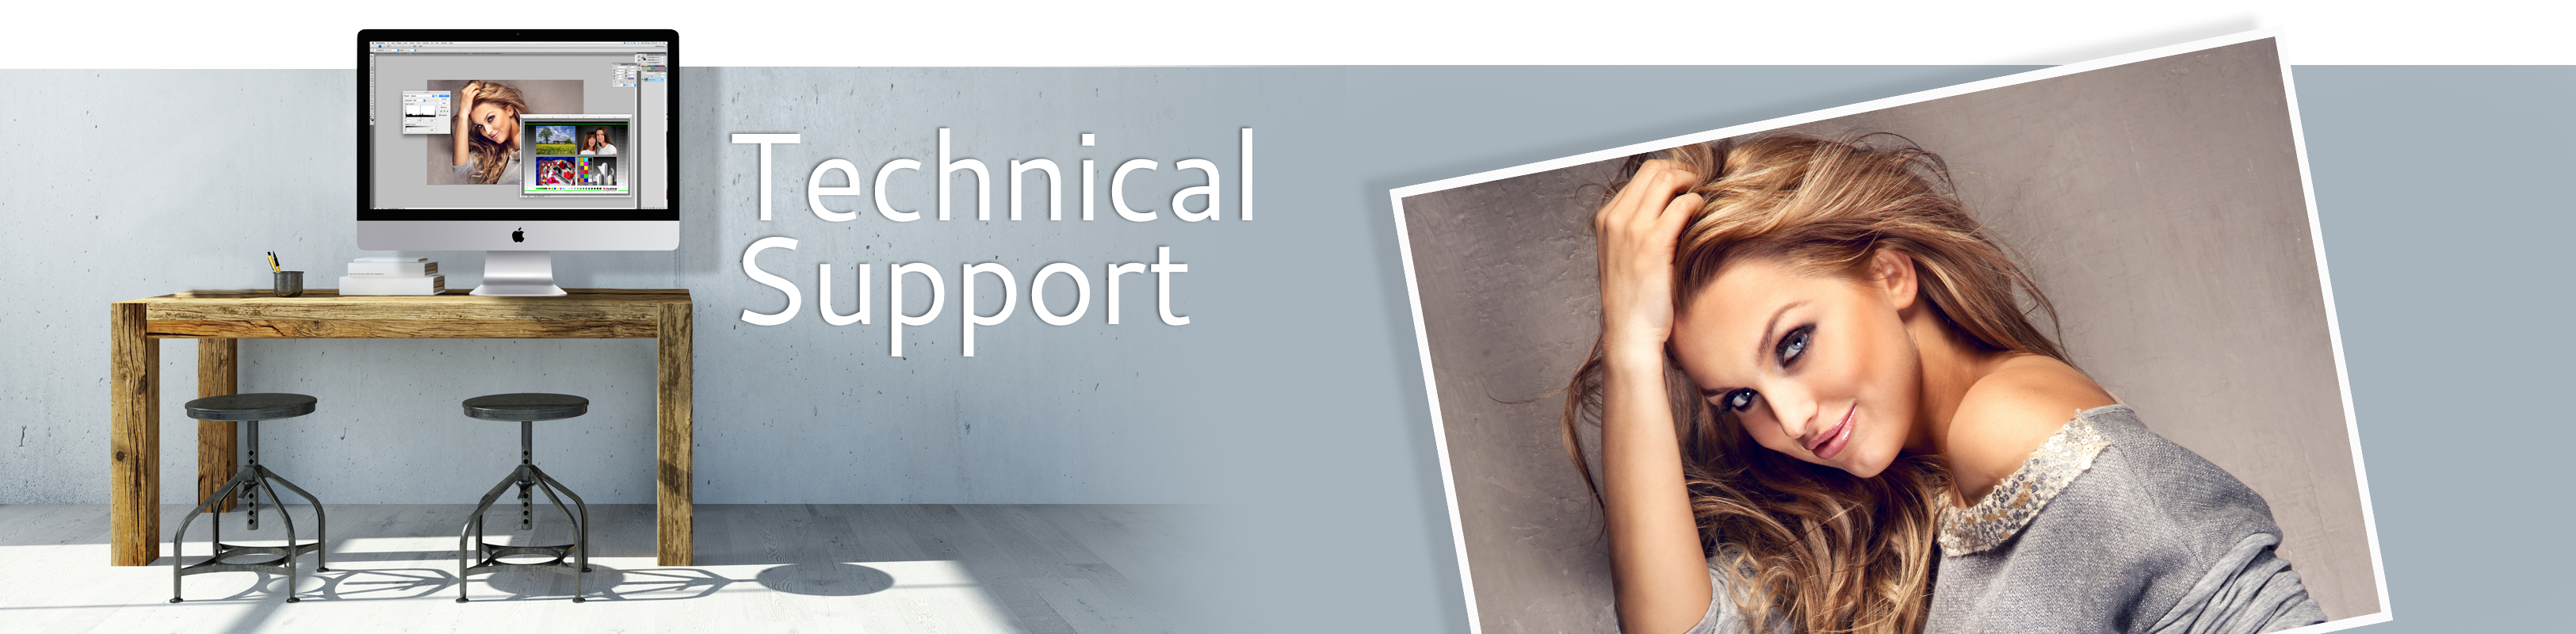 Technical Support Header